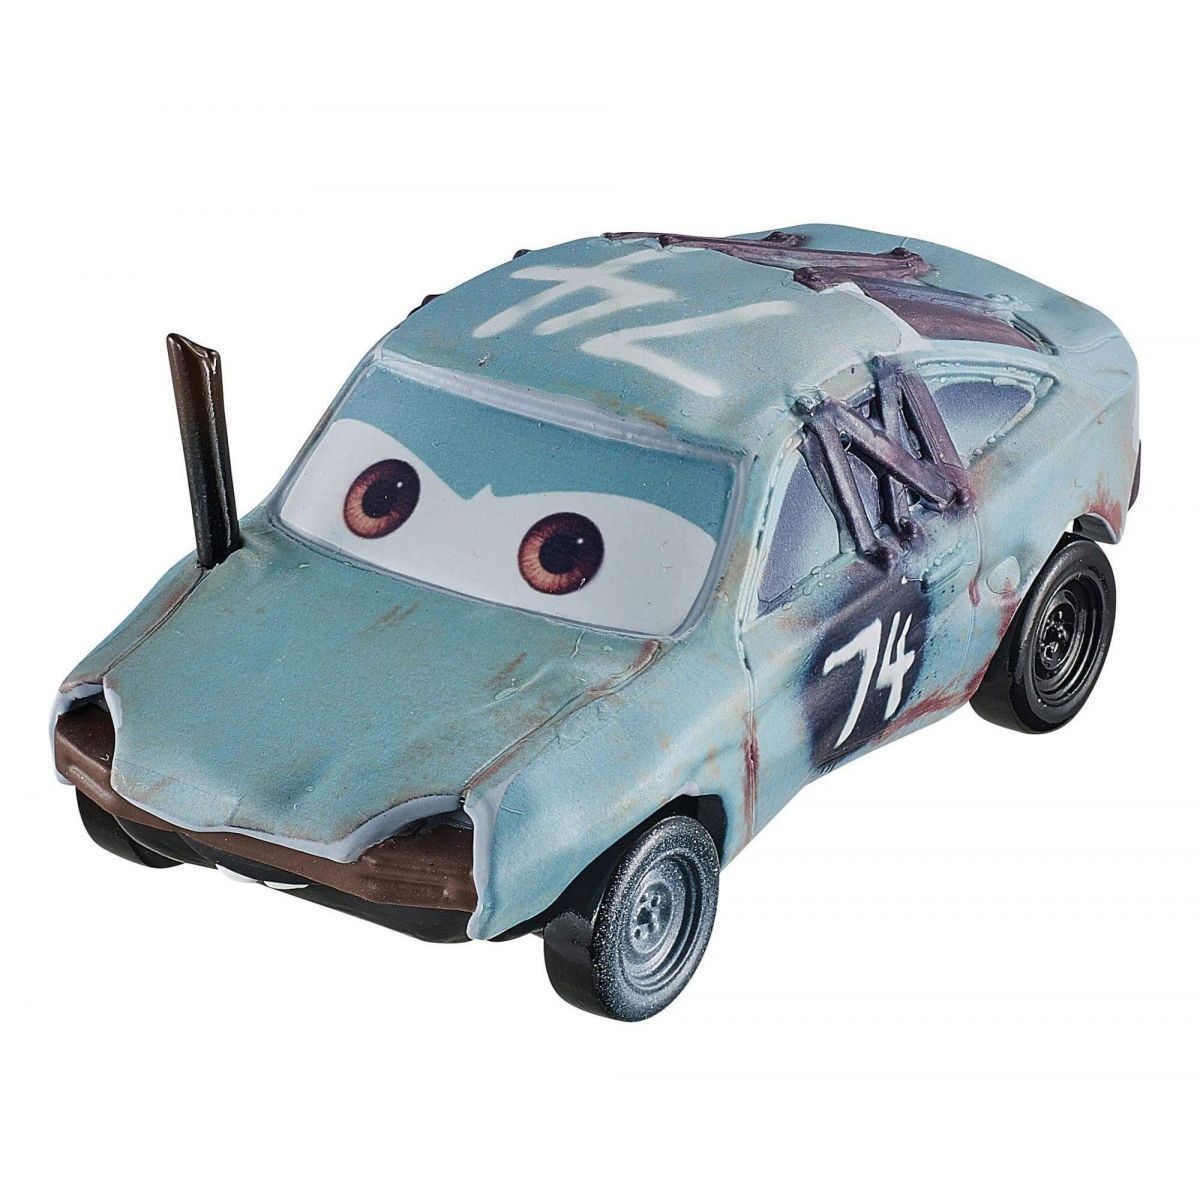 Mattel Cars 3 Auta Patty